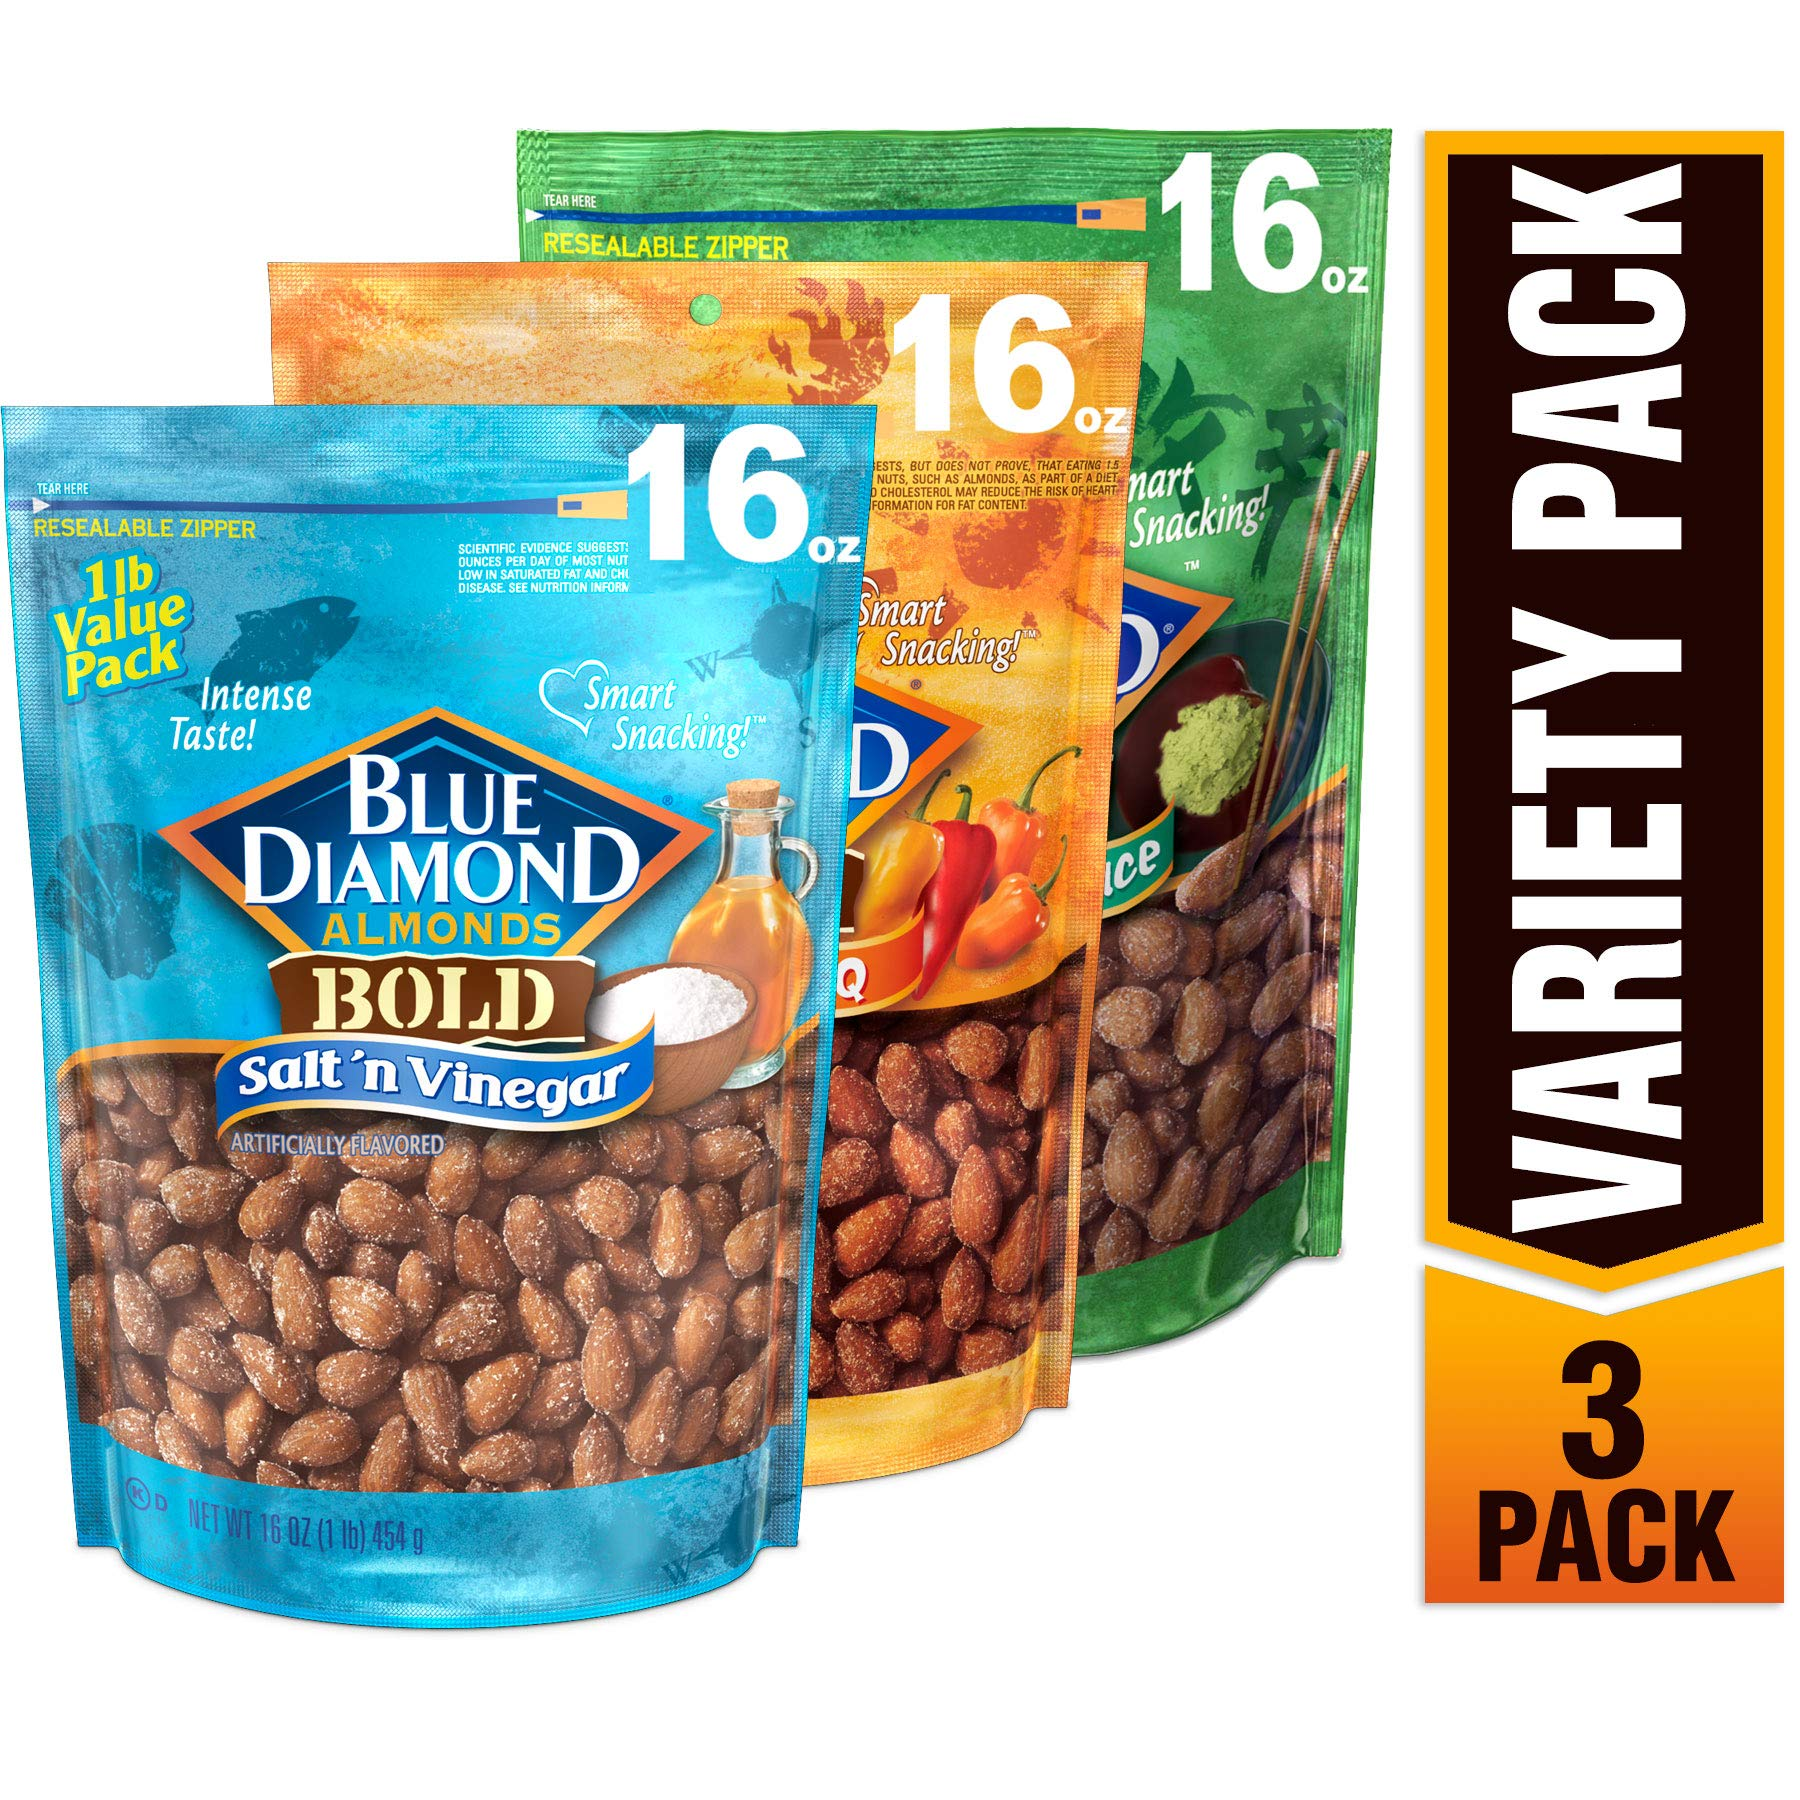 Blue Diamond Almonds Bold Variety Pack - Salt N' Vinegar, Habanero BBQ, and Wasabi & Soy Sauce Flavored Snack Nuts, 16 Oz Resealable Bags (Pack of 3)